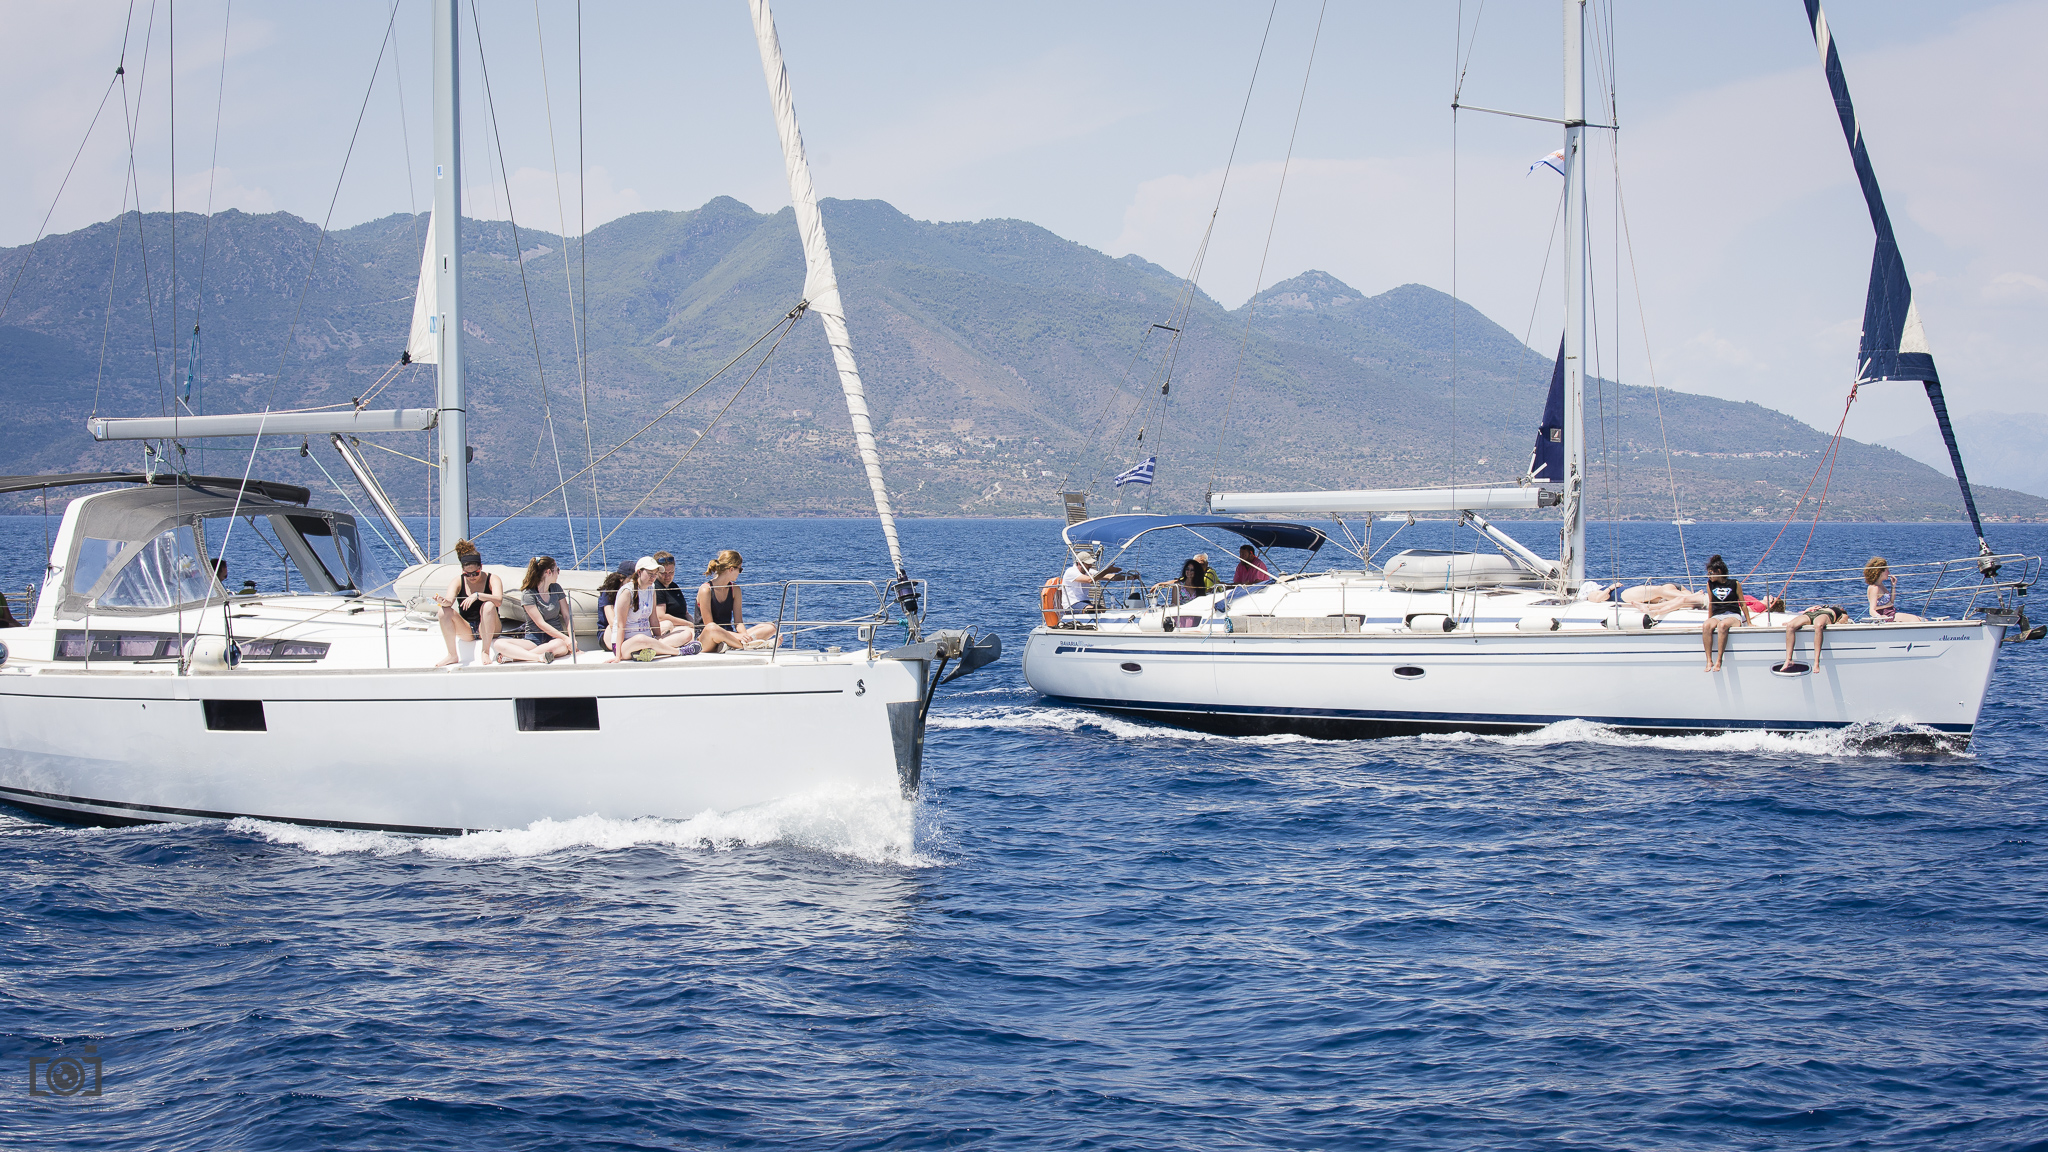 4 Cabin Sailing Yacht  Full day private cruise